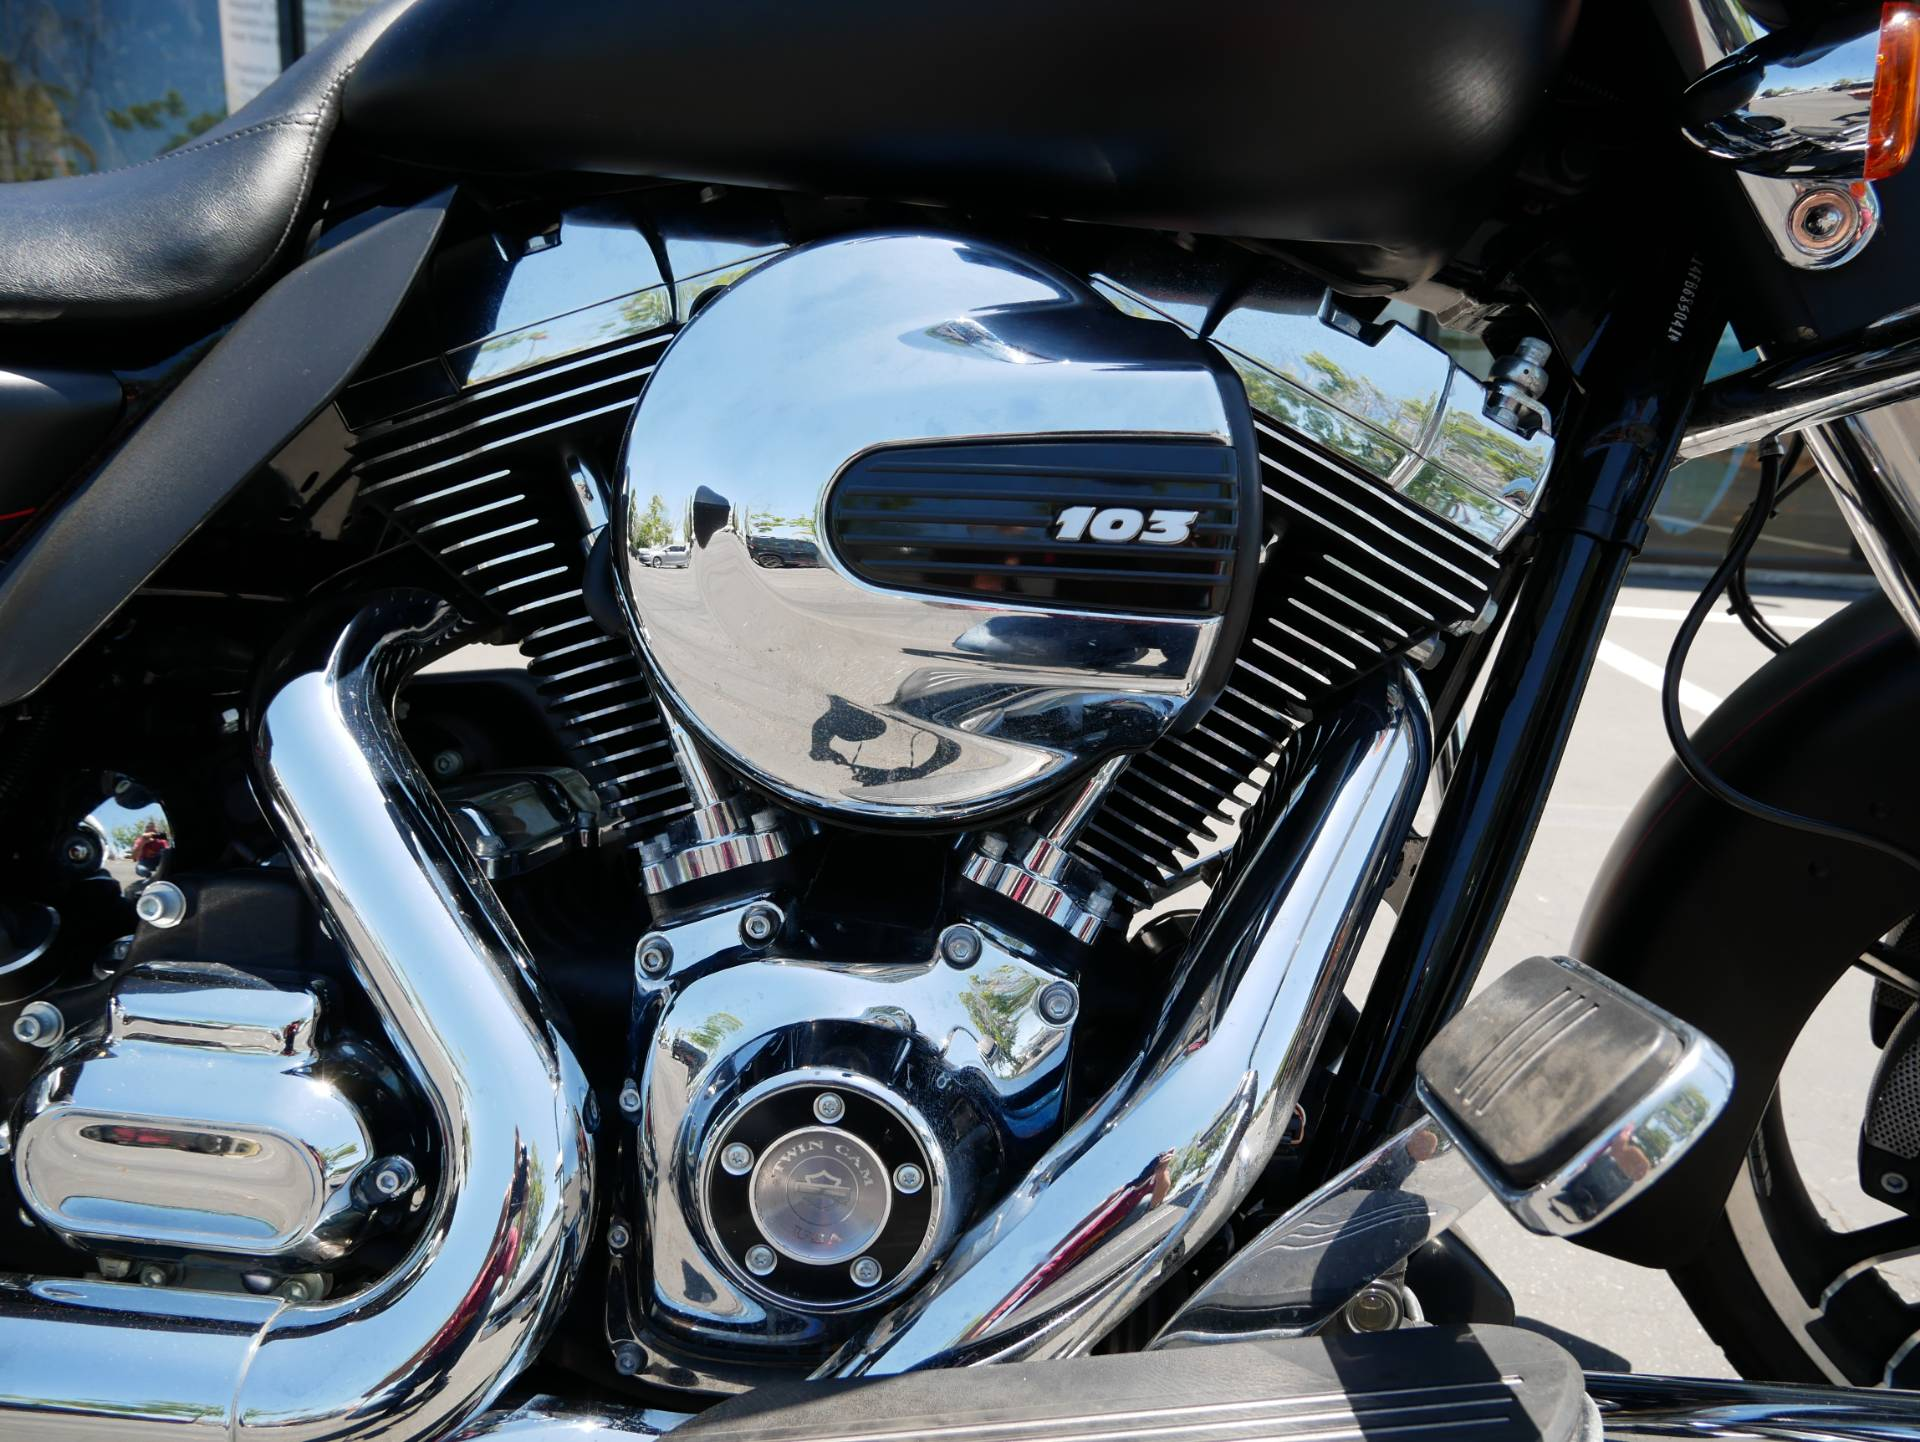 2015 Harley-Davidson Street Glide® Special in San Diego, California - Photo 7